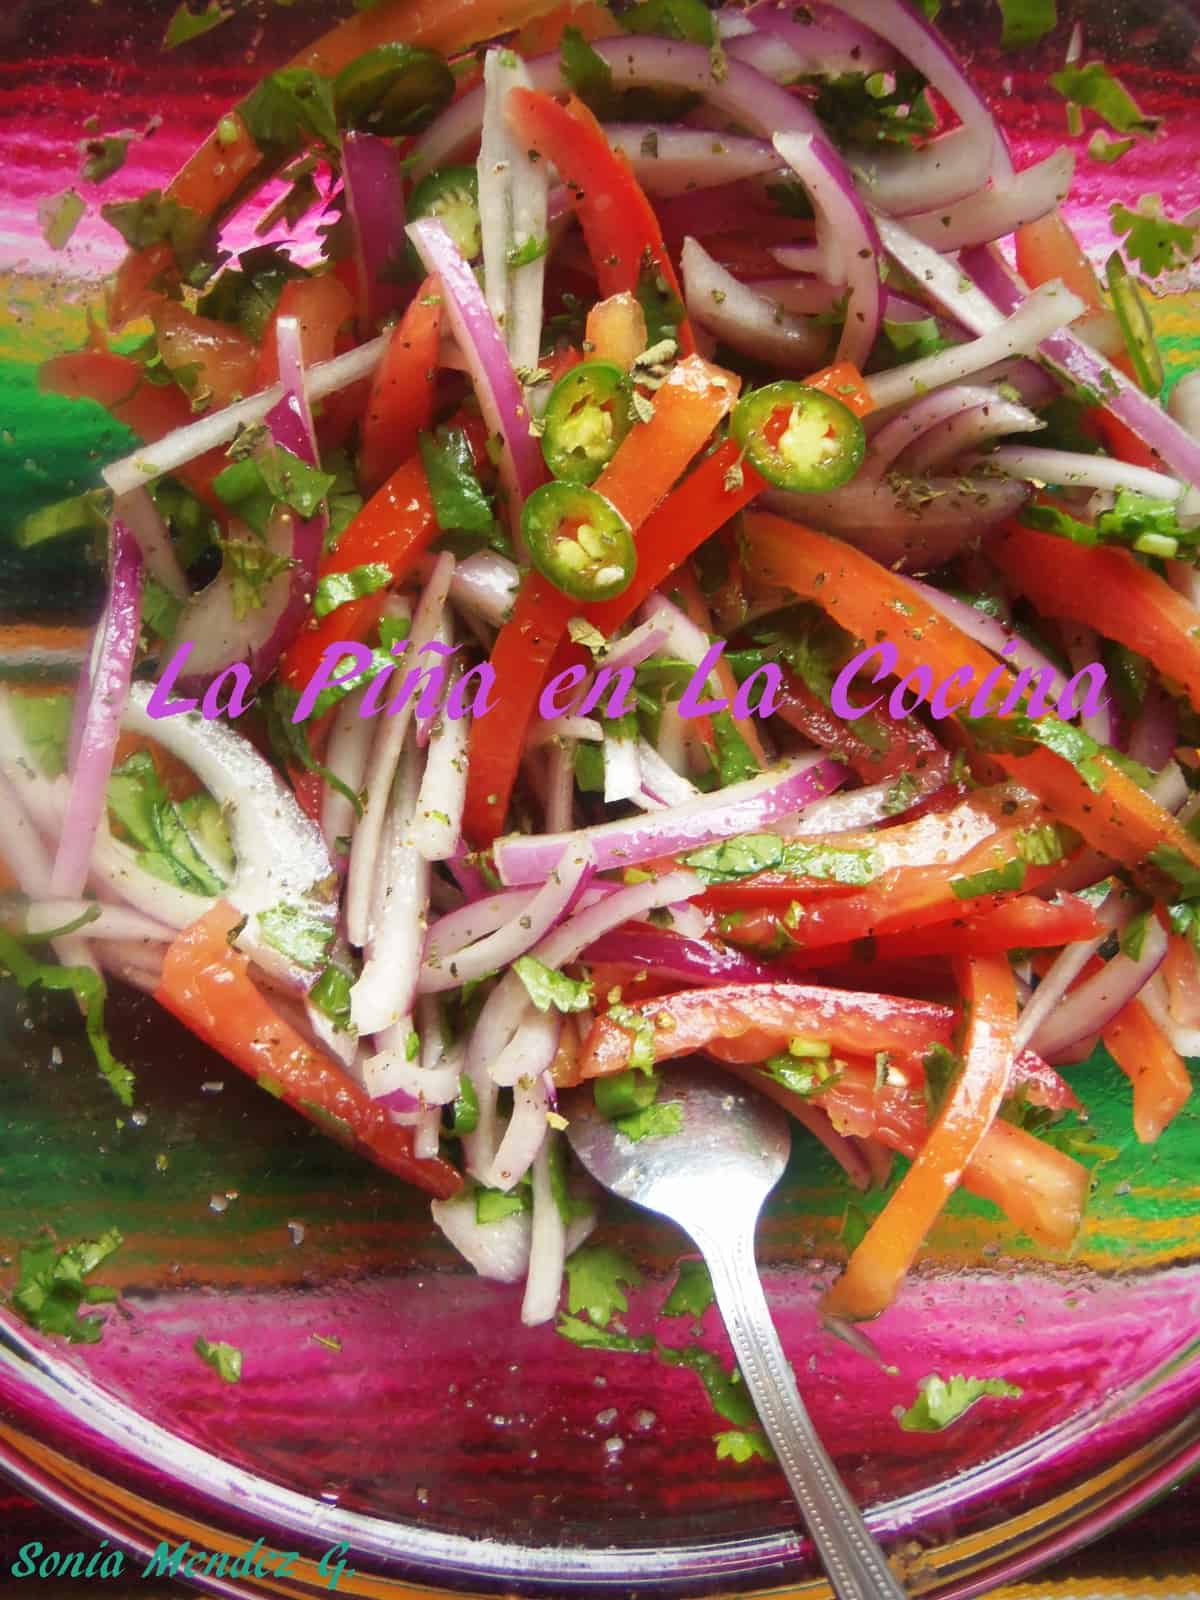 Tomato, Red Onion, Cilantro and Serrano Slaw. I love this as a topping for tacos or simply on a bed of rice.